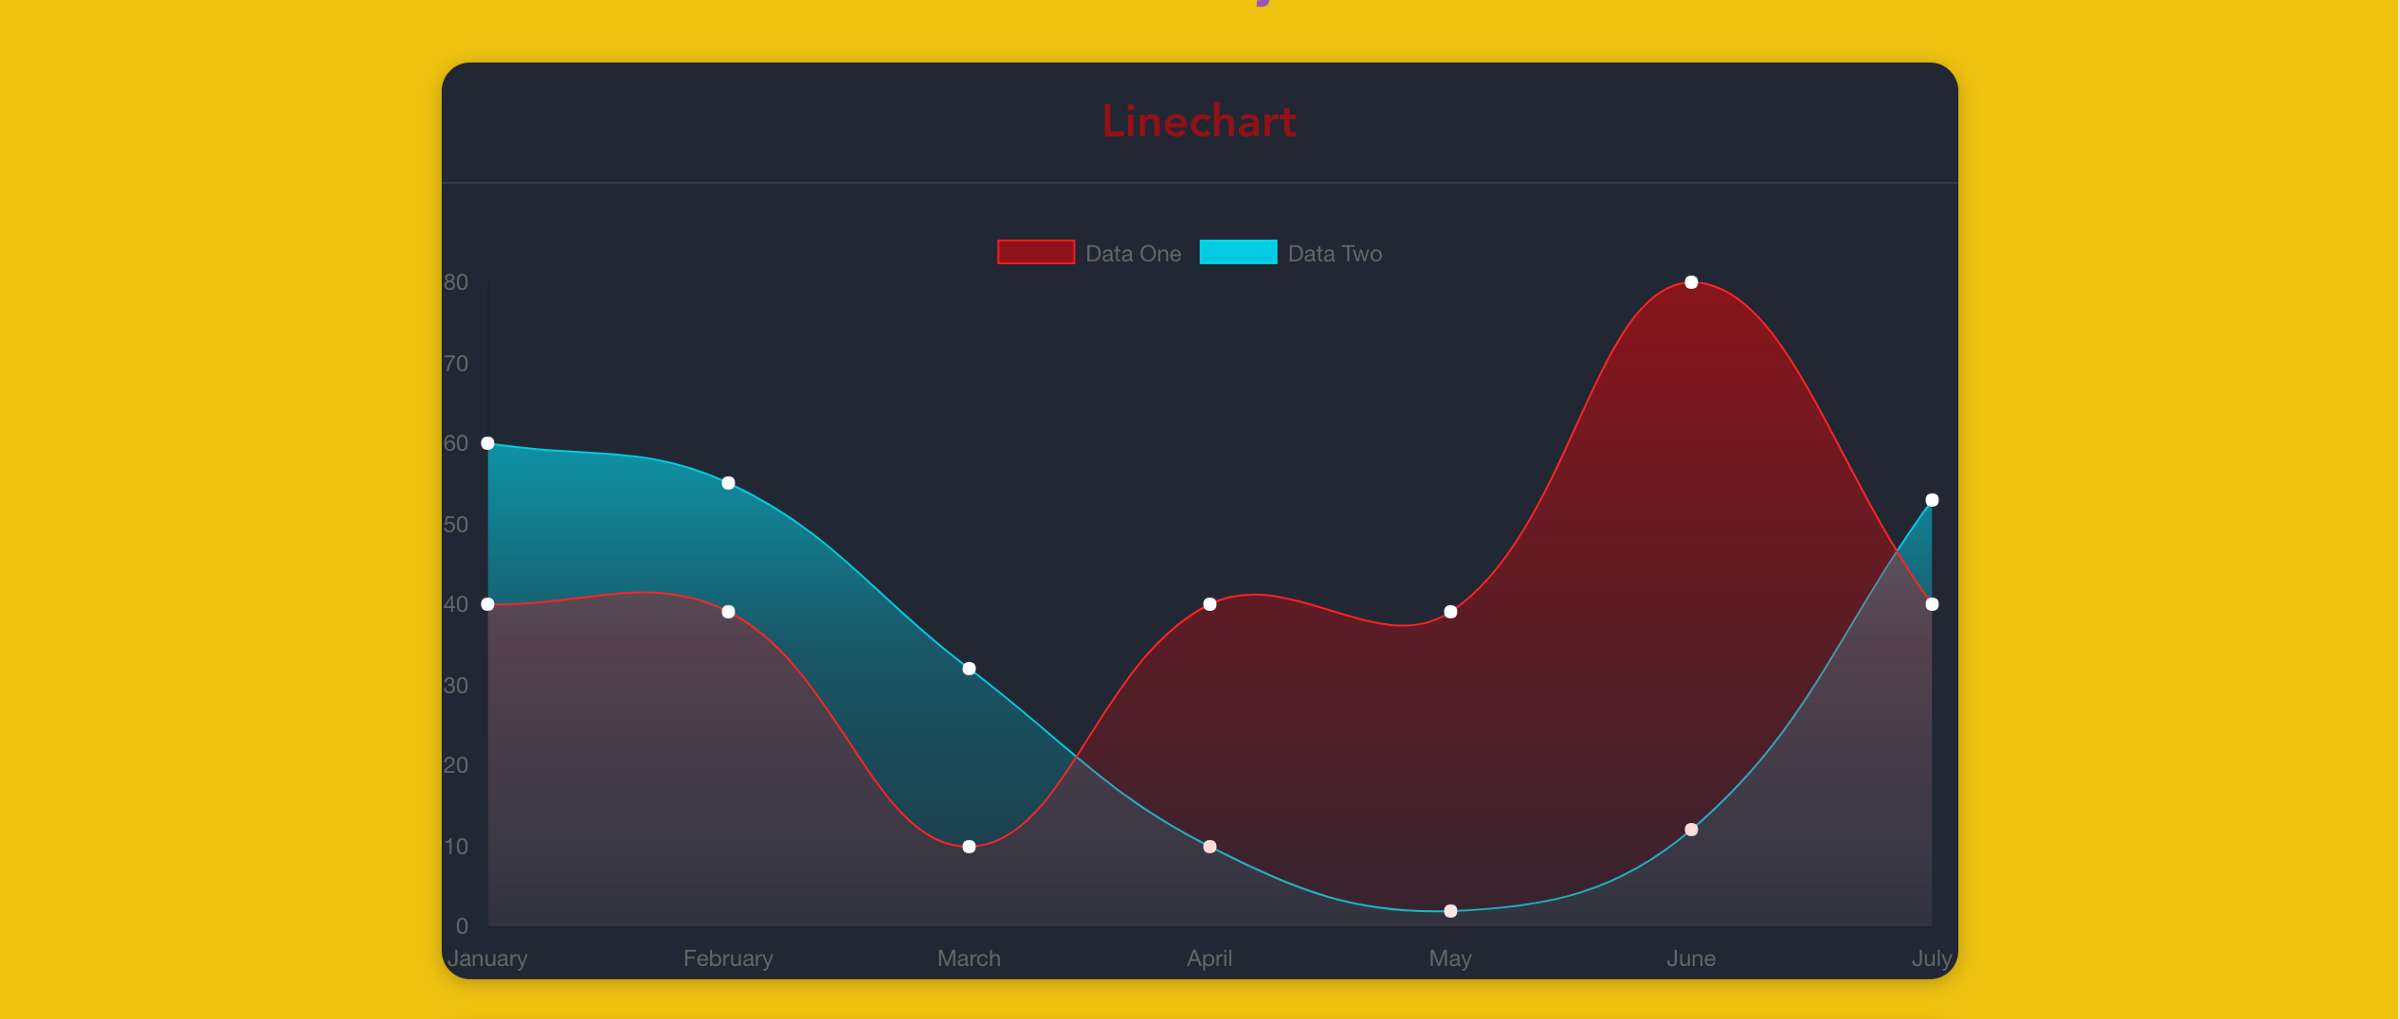 Creating Stunning Charts With Vue Js And Chart